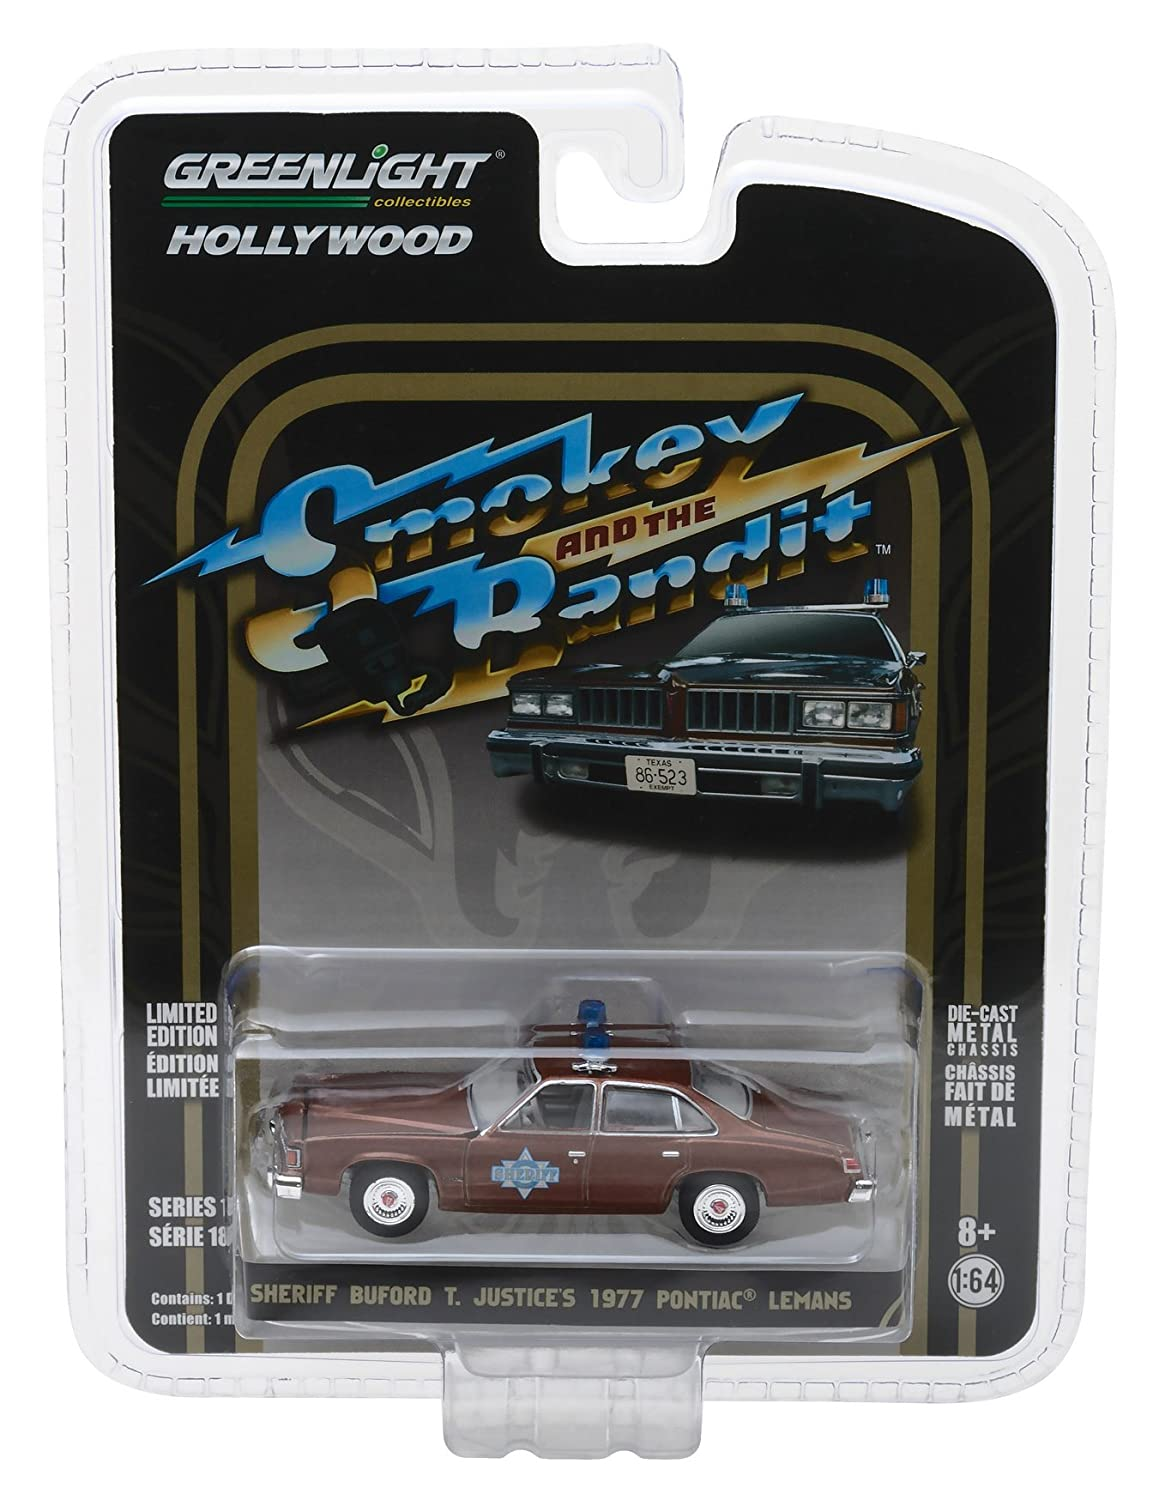 Greenlight 1 64 Hollywood Series 18 Smokey and The Bandit Sheriff Buford T Justice's 1977 Pontiac Lemans